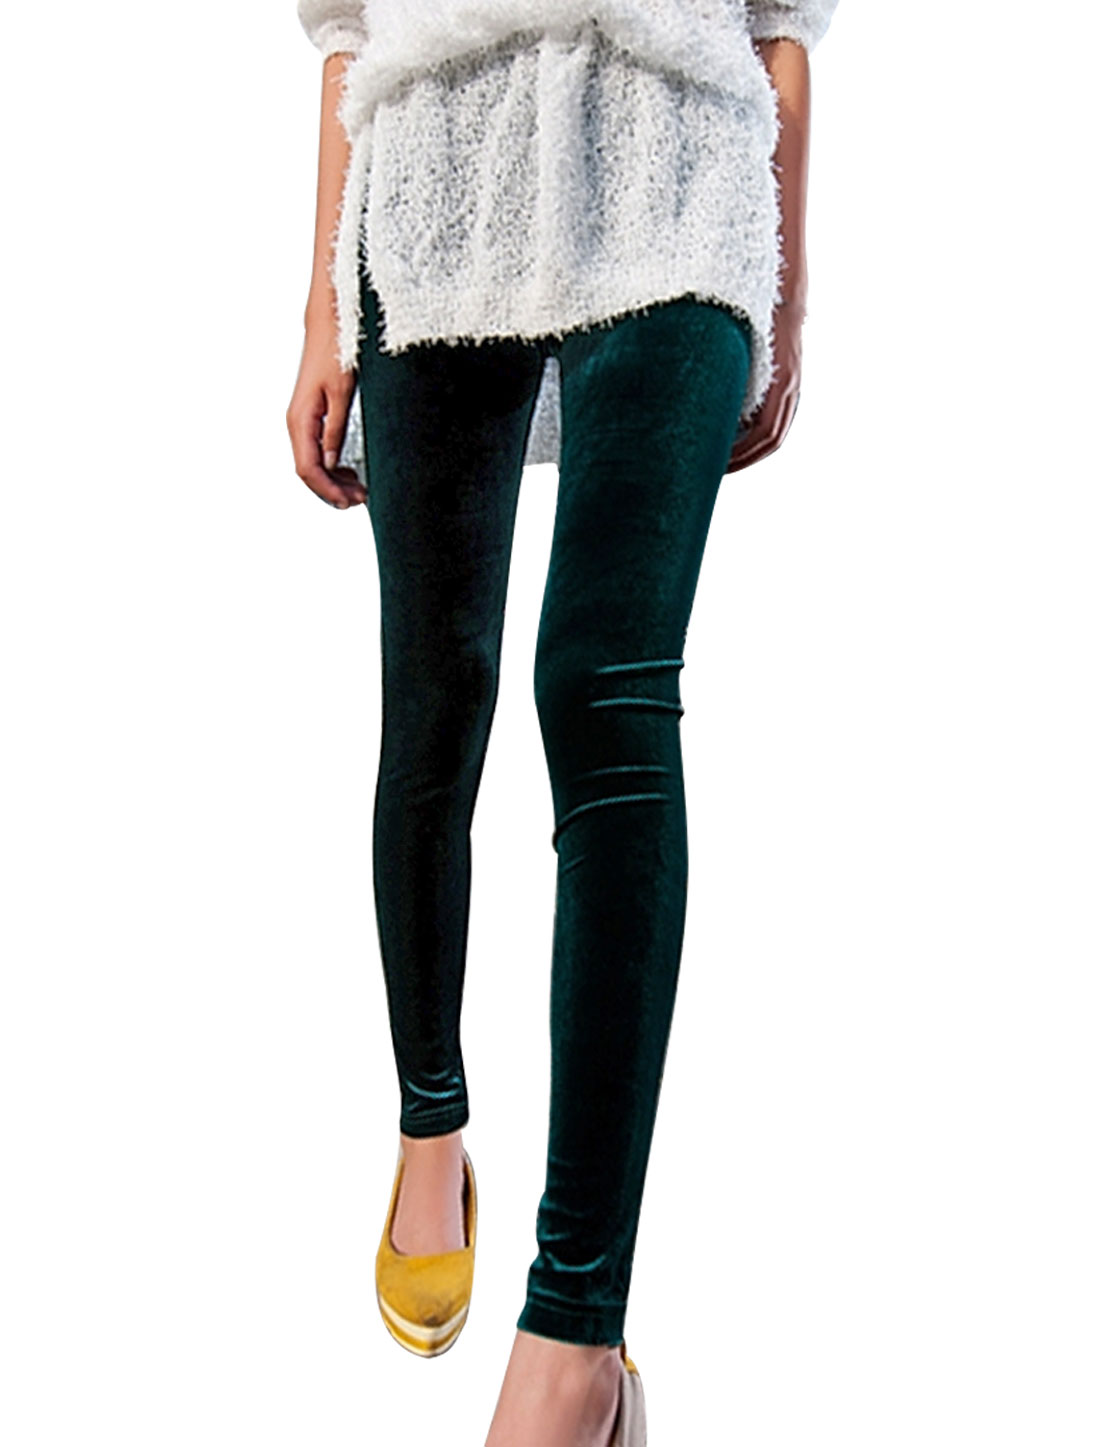 Ladies Dark Green Stretchy Autumn Mid Rise Skinny Leggings XS